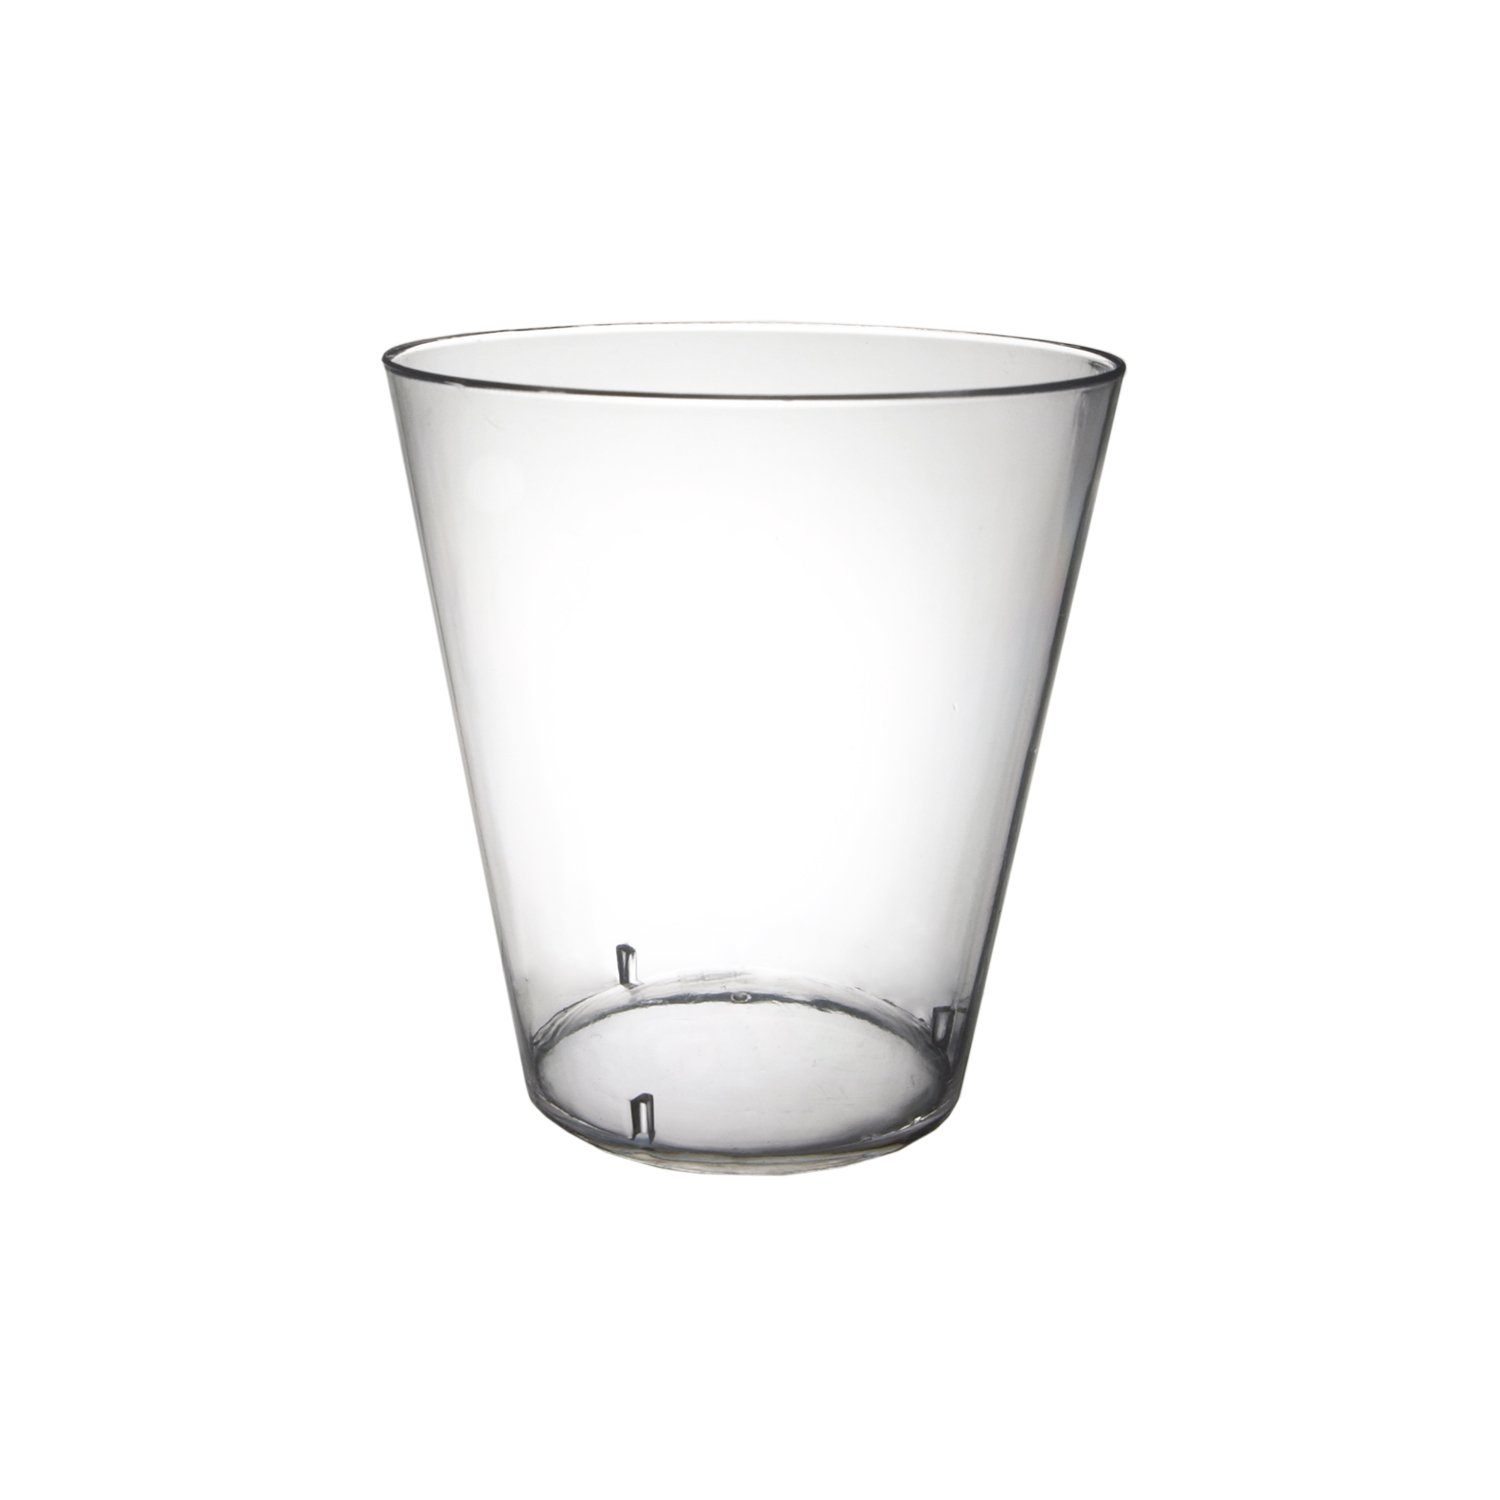 Party Essentials N25021 Hard Plastic Shot Glass, 2 oz. Capacity, Clear (20 Packs of 50)